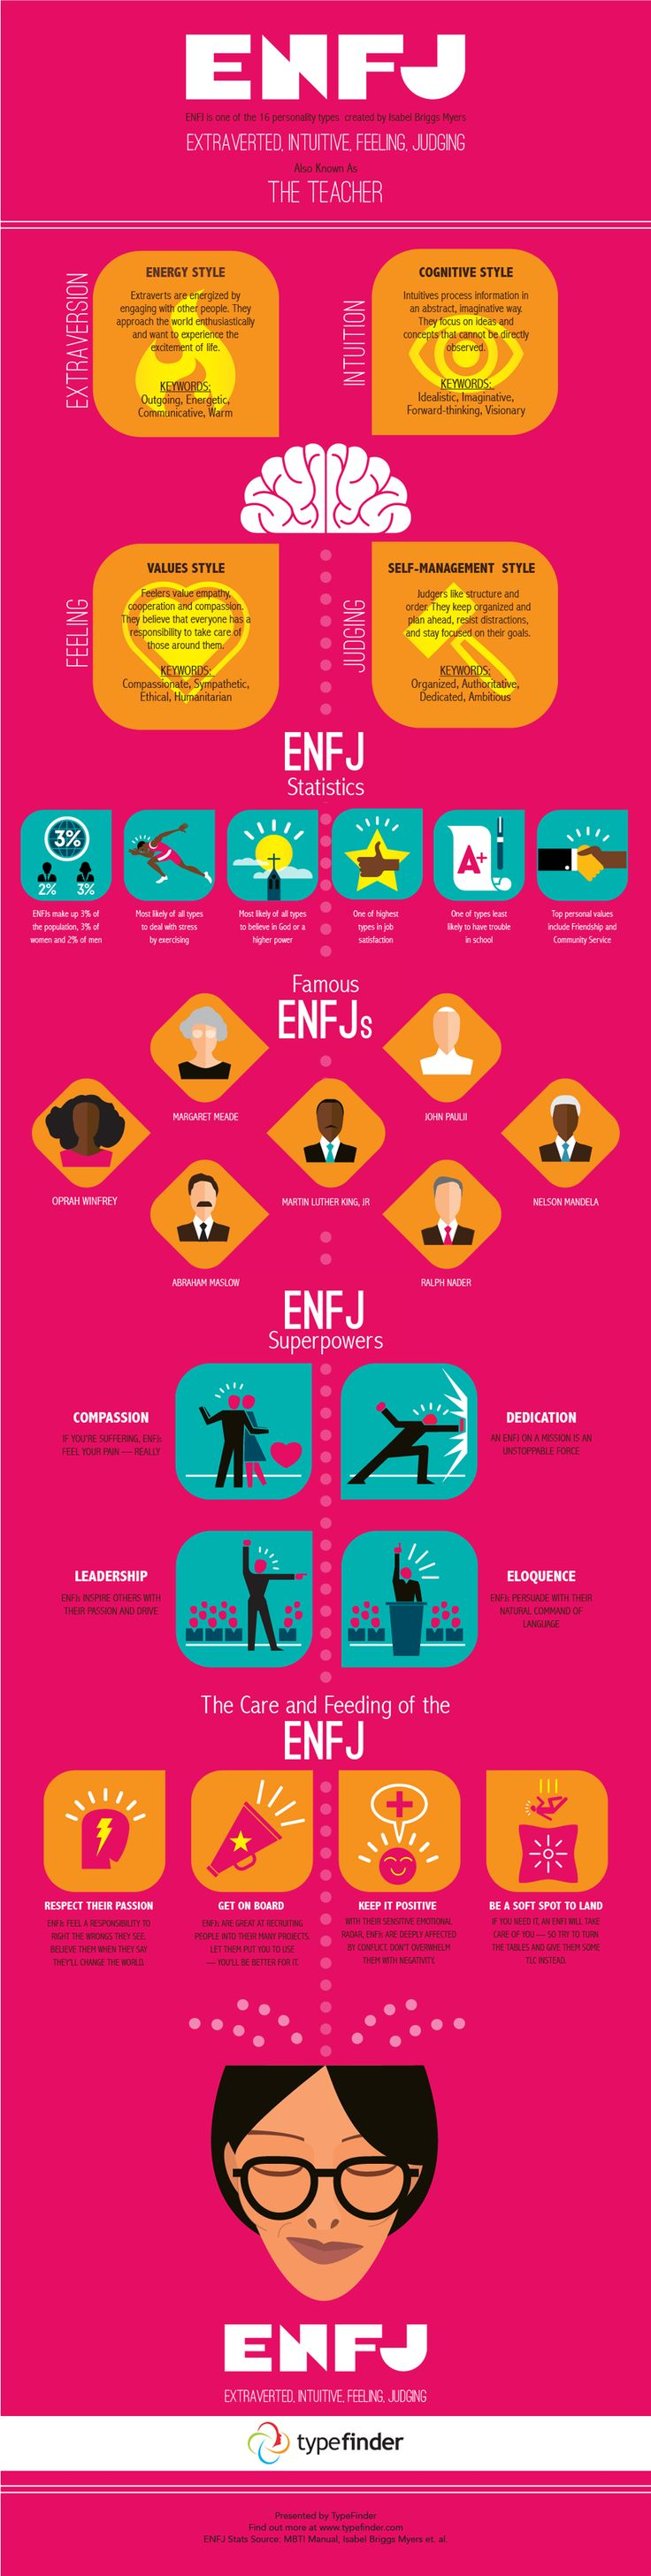 enfj dating estp This method will help narrow down your date possibilities nothing will make you gel more with an enfj than attempting to learn something new the traditional dates will not fly with an estp — they like excitement.